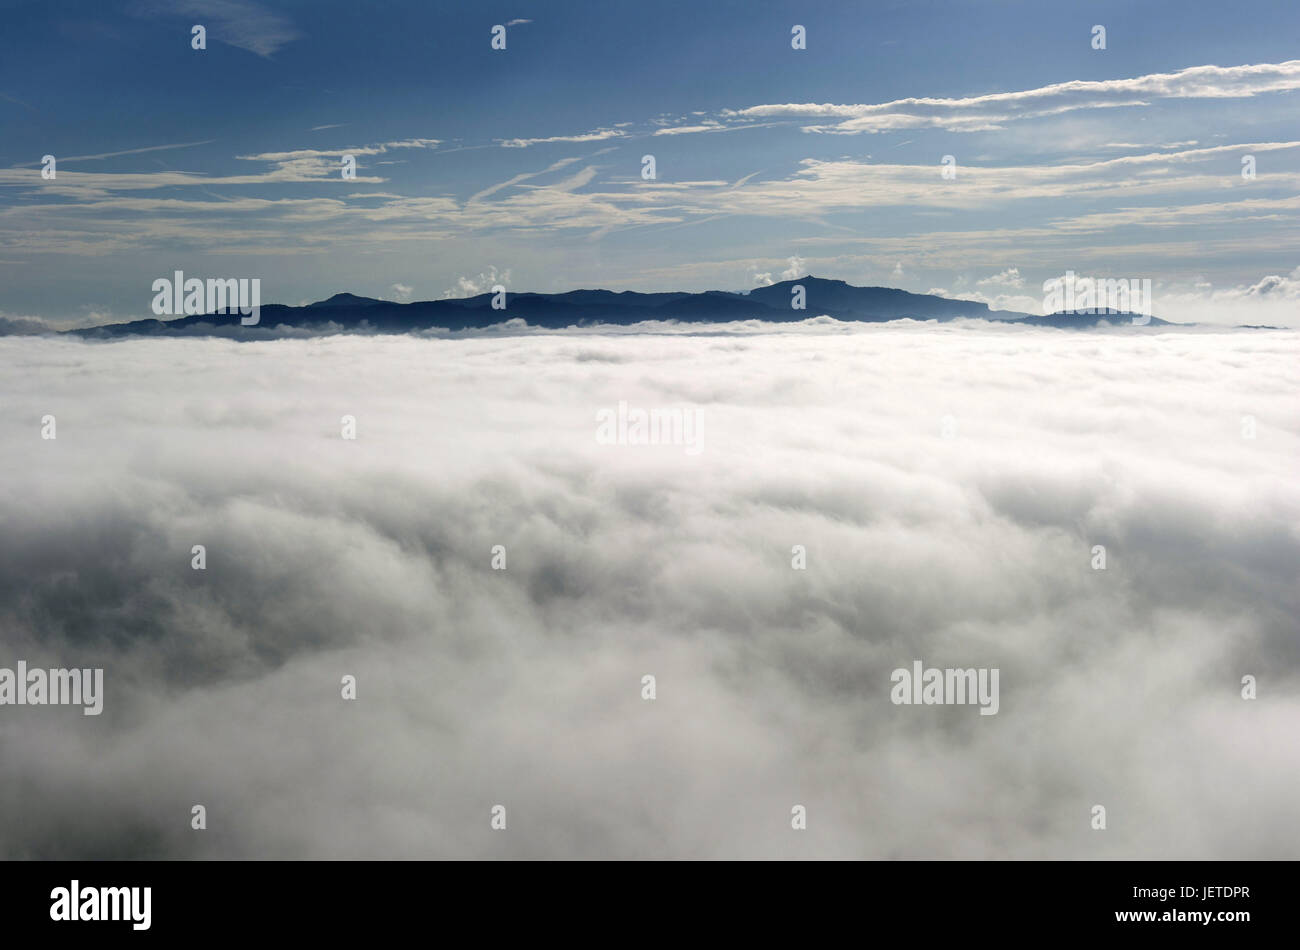 Spain, Catalonia, Montserrat, scenery with cloud cover, - Stock Image